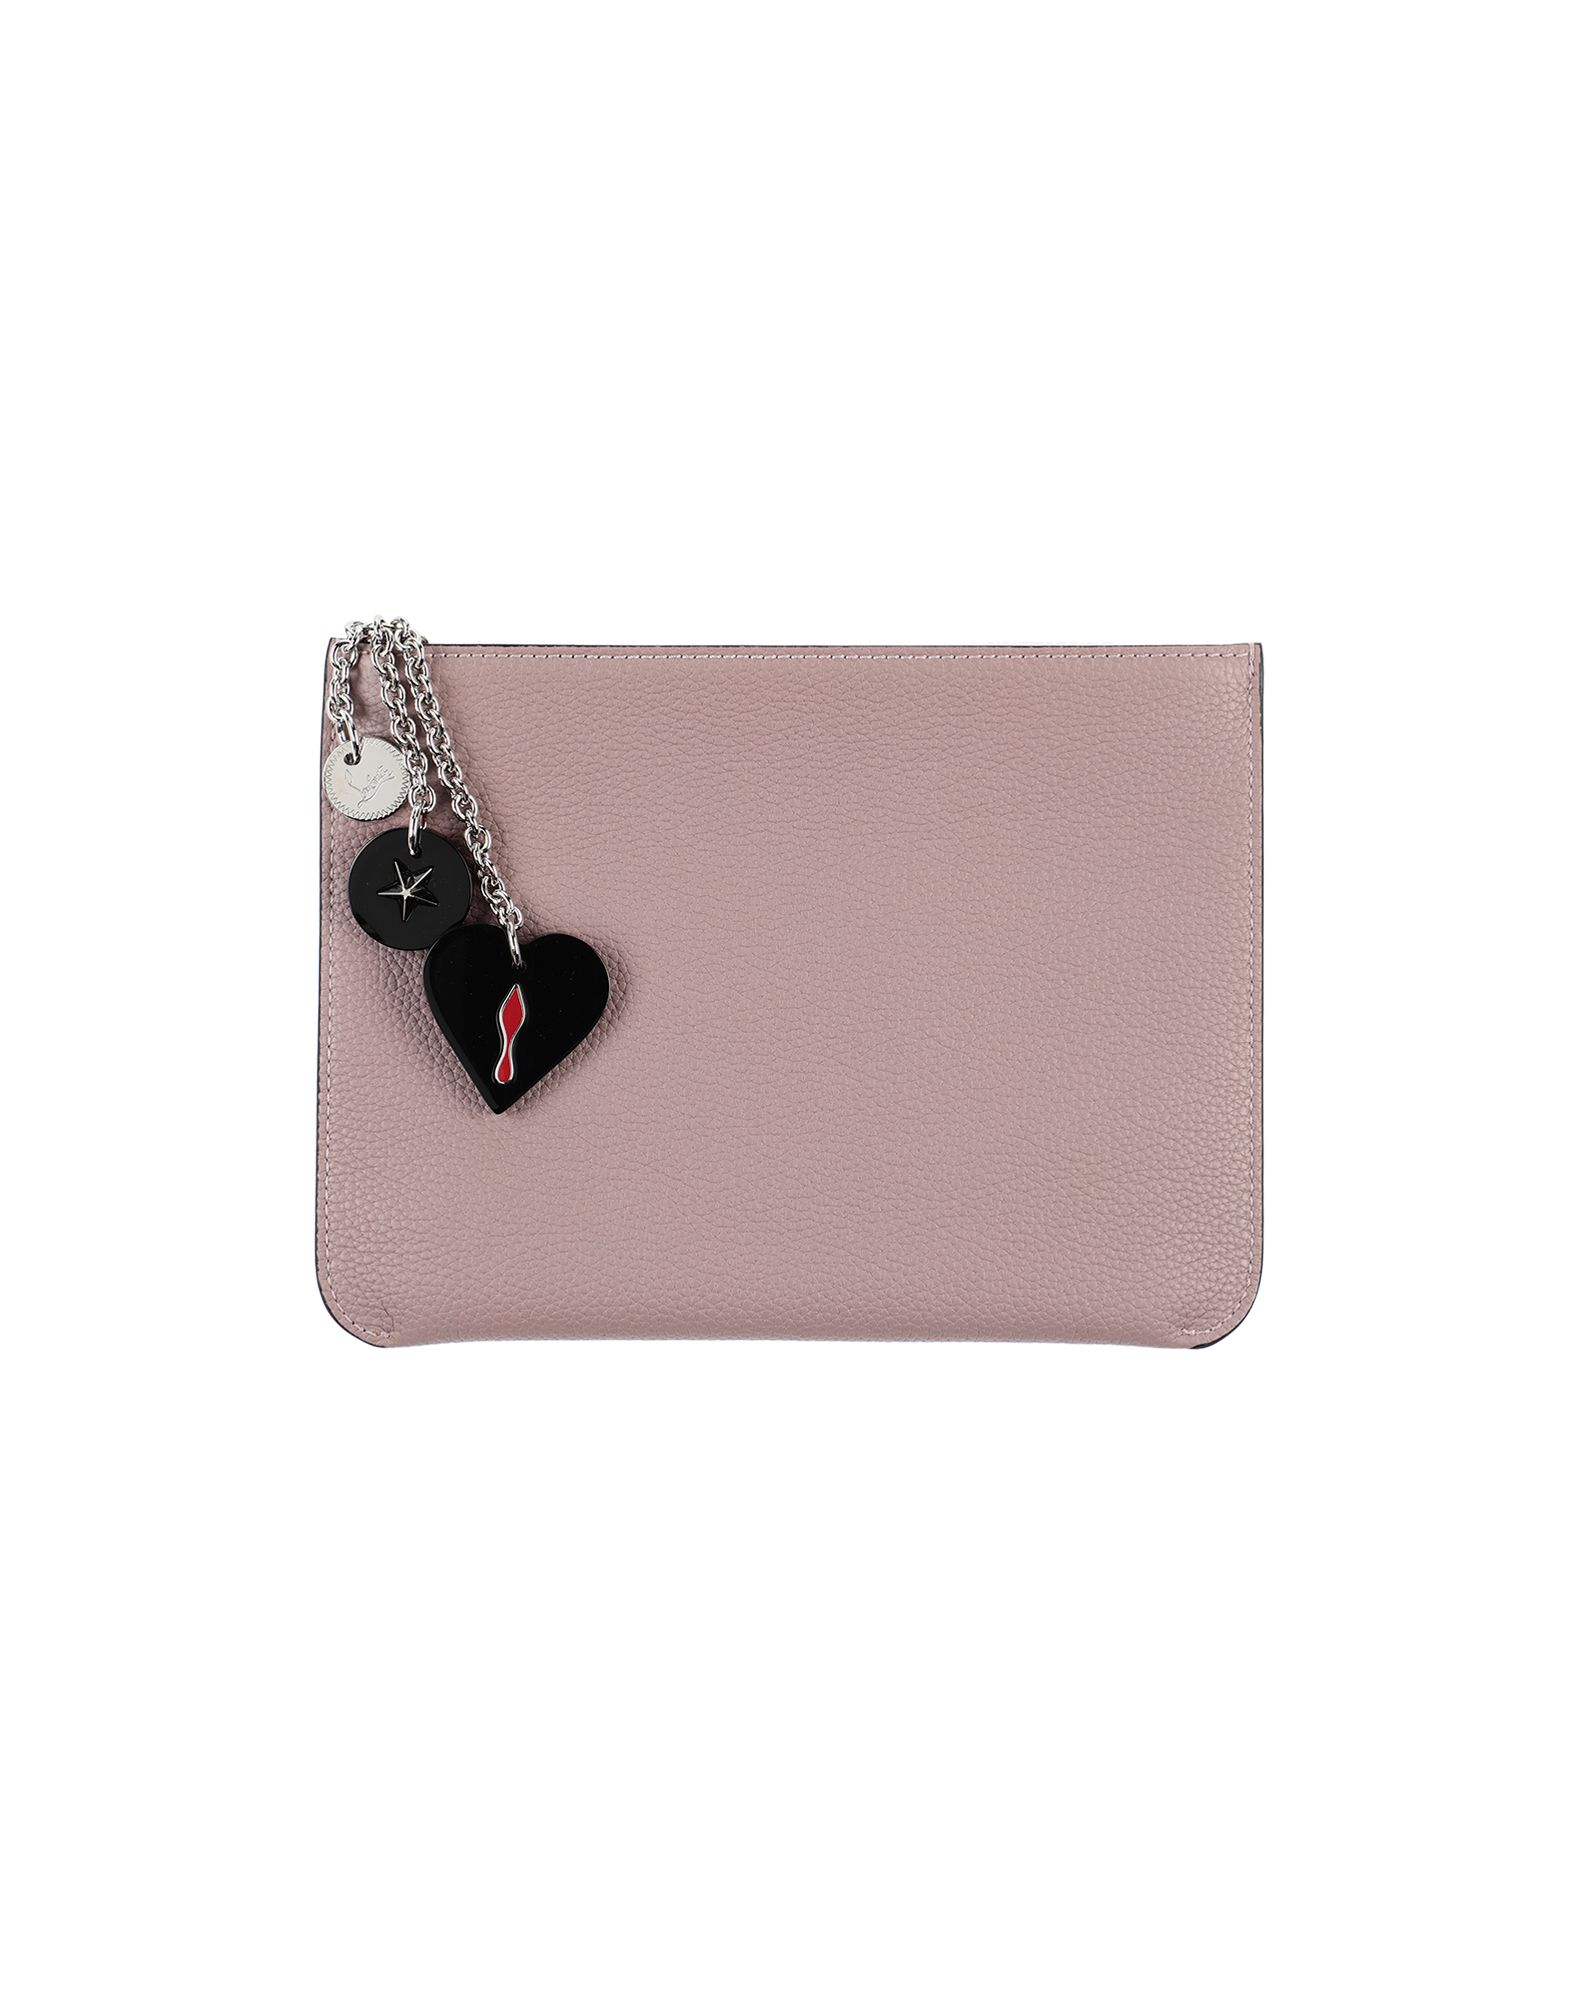 CHRISTIAN LOUBOUTIN Pouches. textured leather, contrasting applications, logo, solid color, zip, fully lined, contains non-textile parts of animal origin. Calfskin